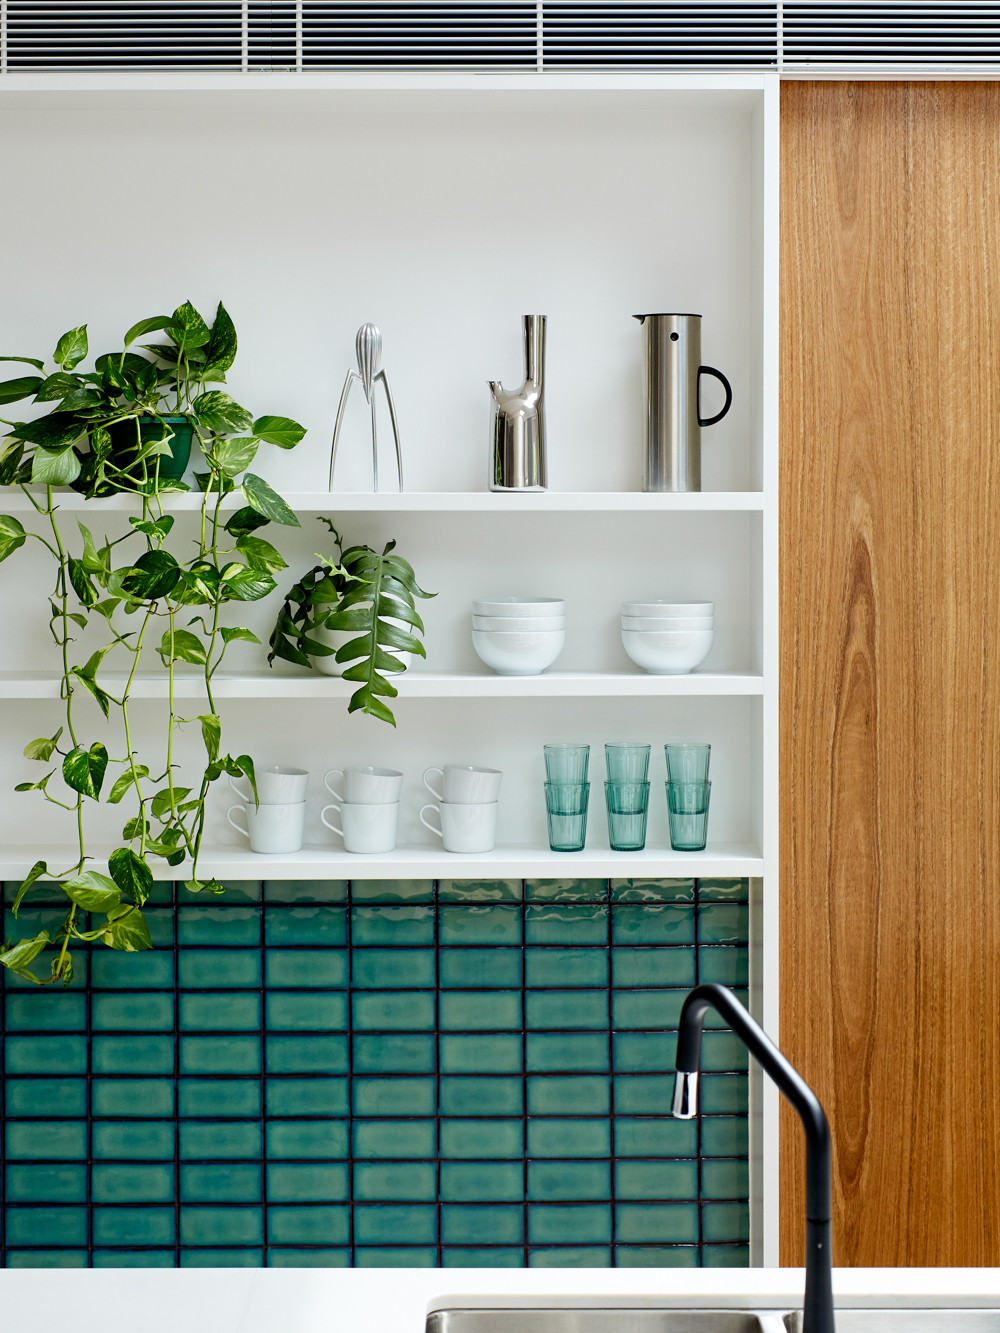 Kitchen with white shelves and a green tile splashback